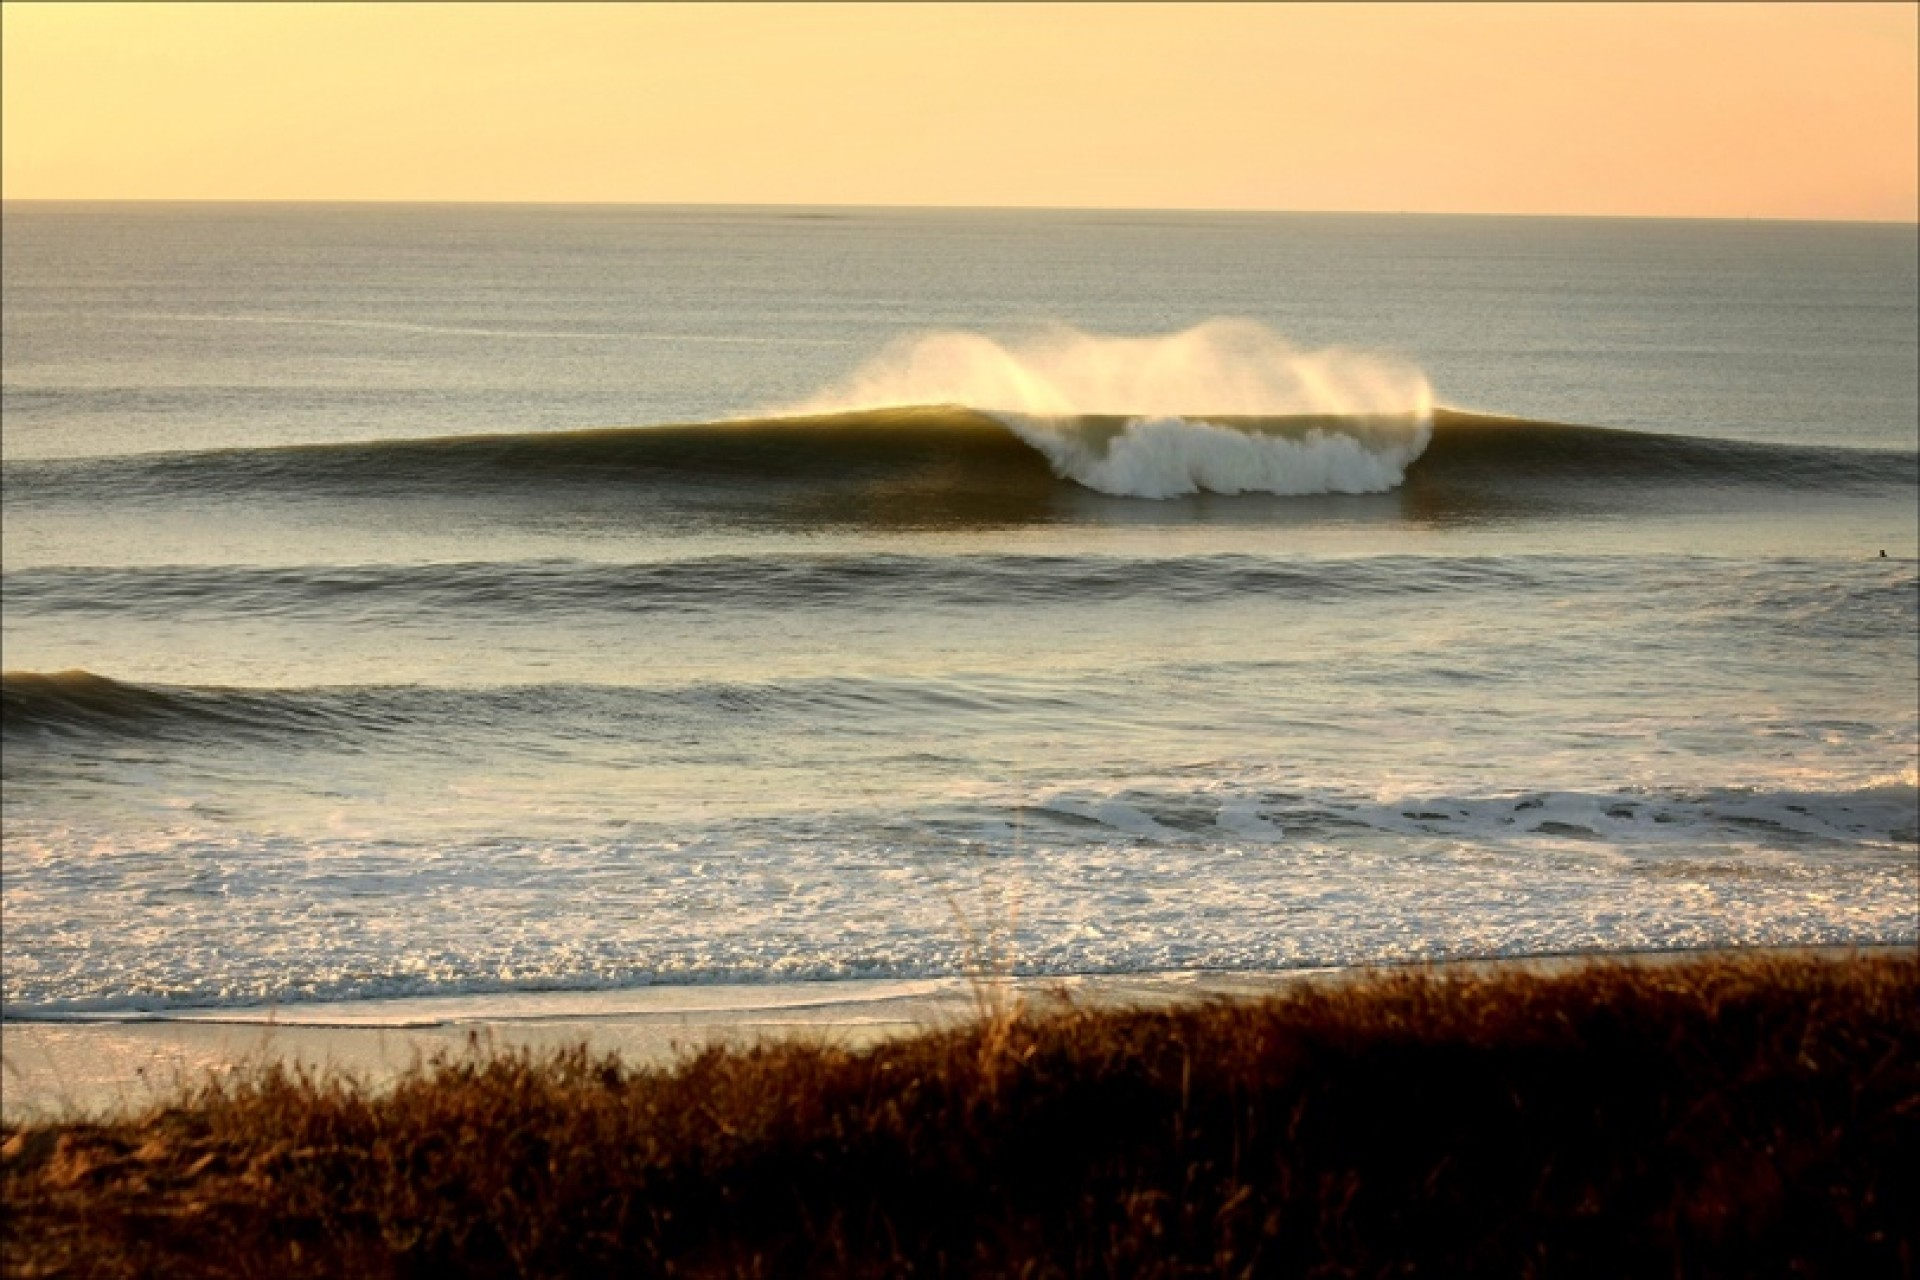 mike-photographie's photo of Les Conches/Bud Bud